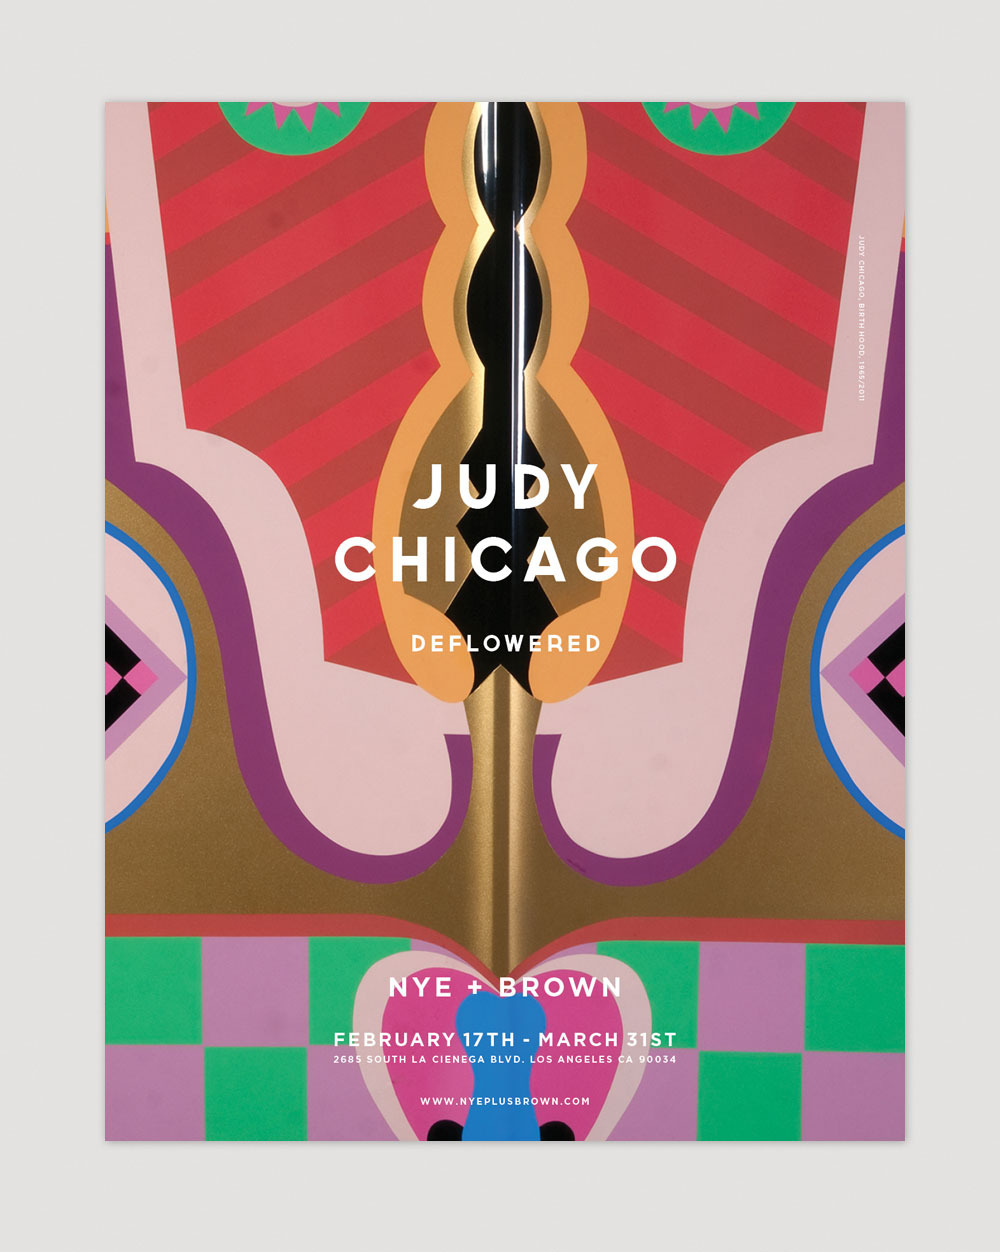 judy_chicago_deflowered-kyle_amar-14.jpg